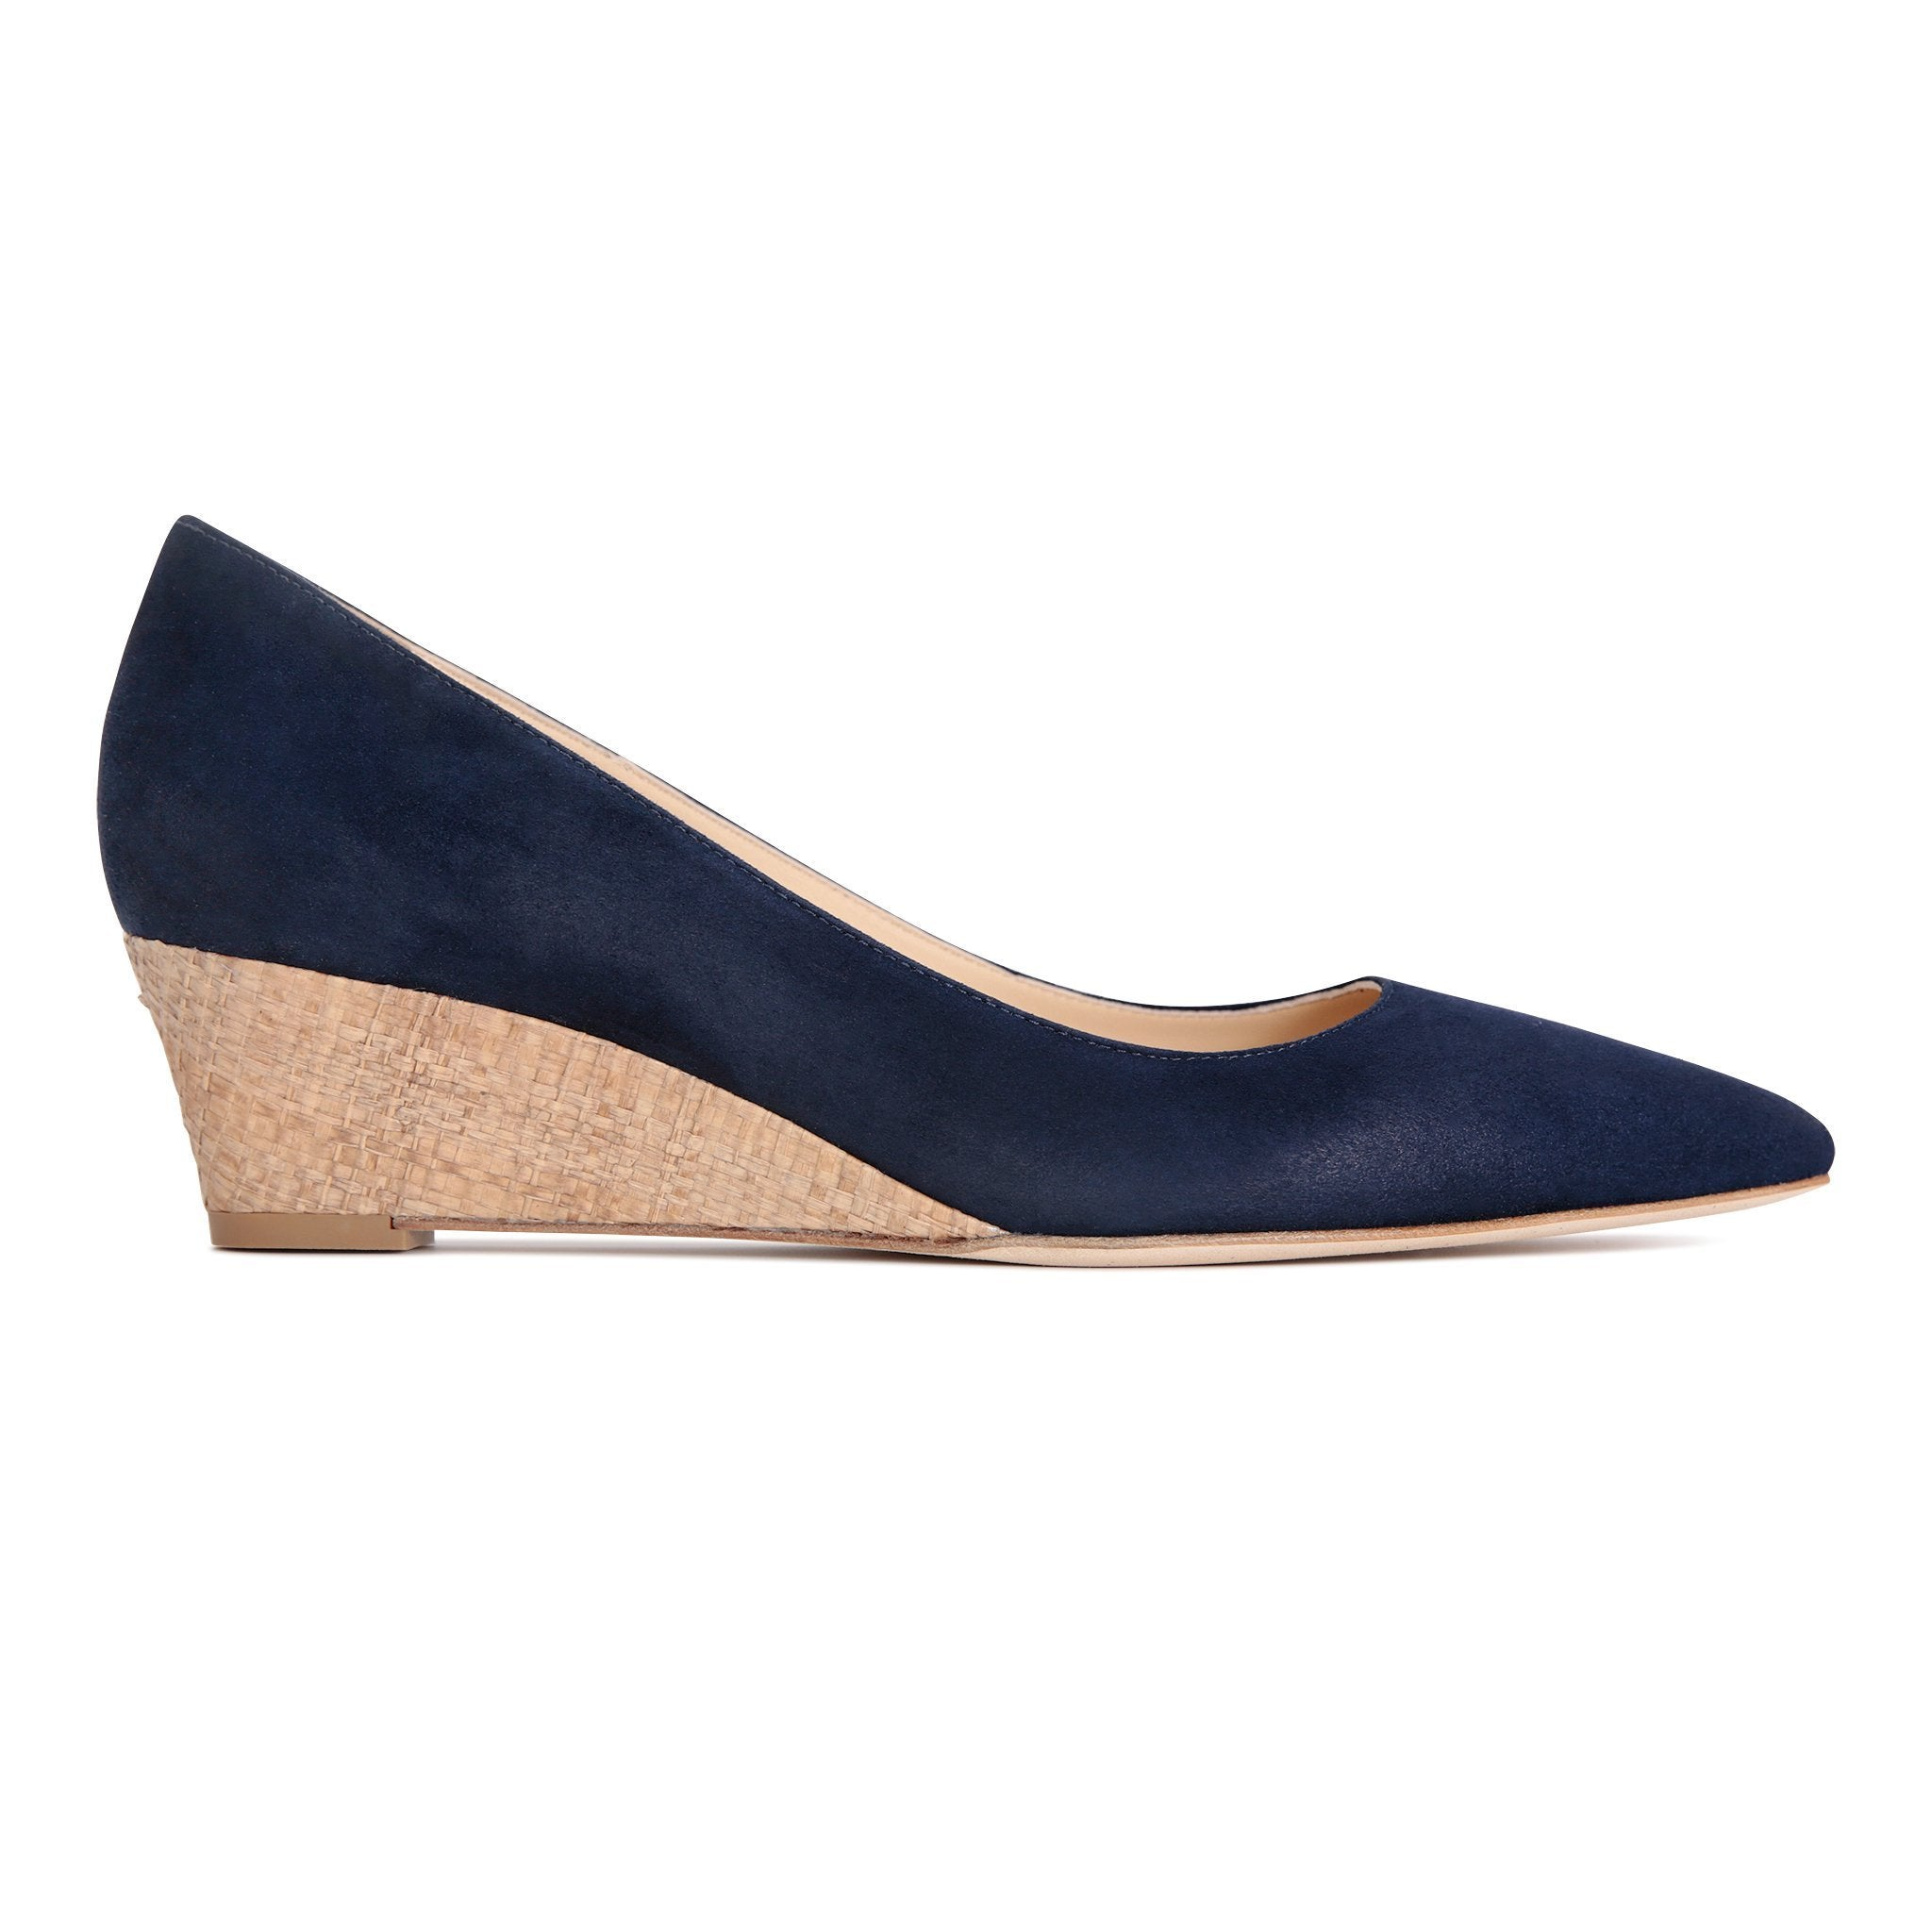 TRENTO - Velukid Midnight + Raffia Natural, VIAJIYU - Women's Hand Made Sustainable Luxury Shoes. Made in Italy. Made to Order.